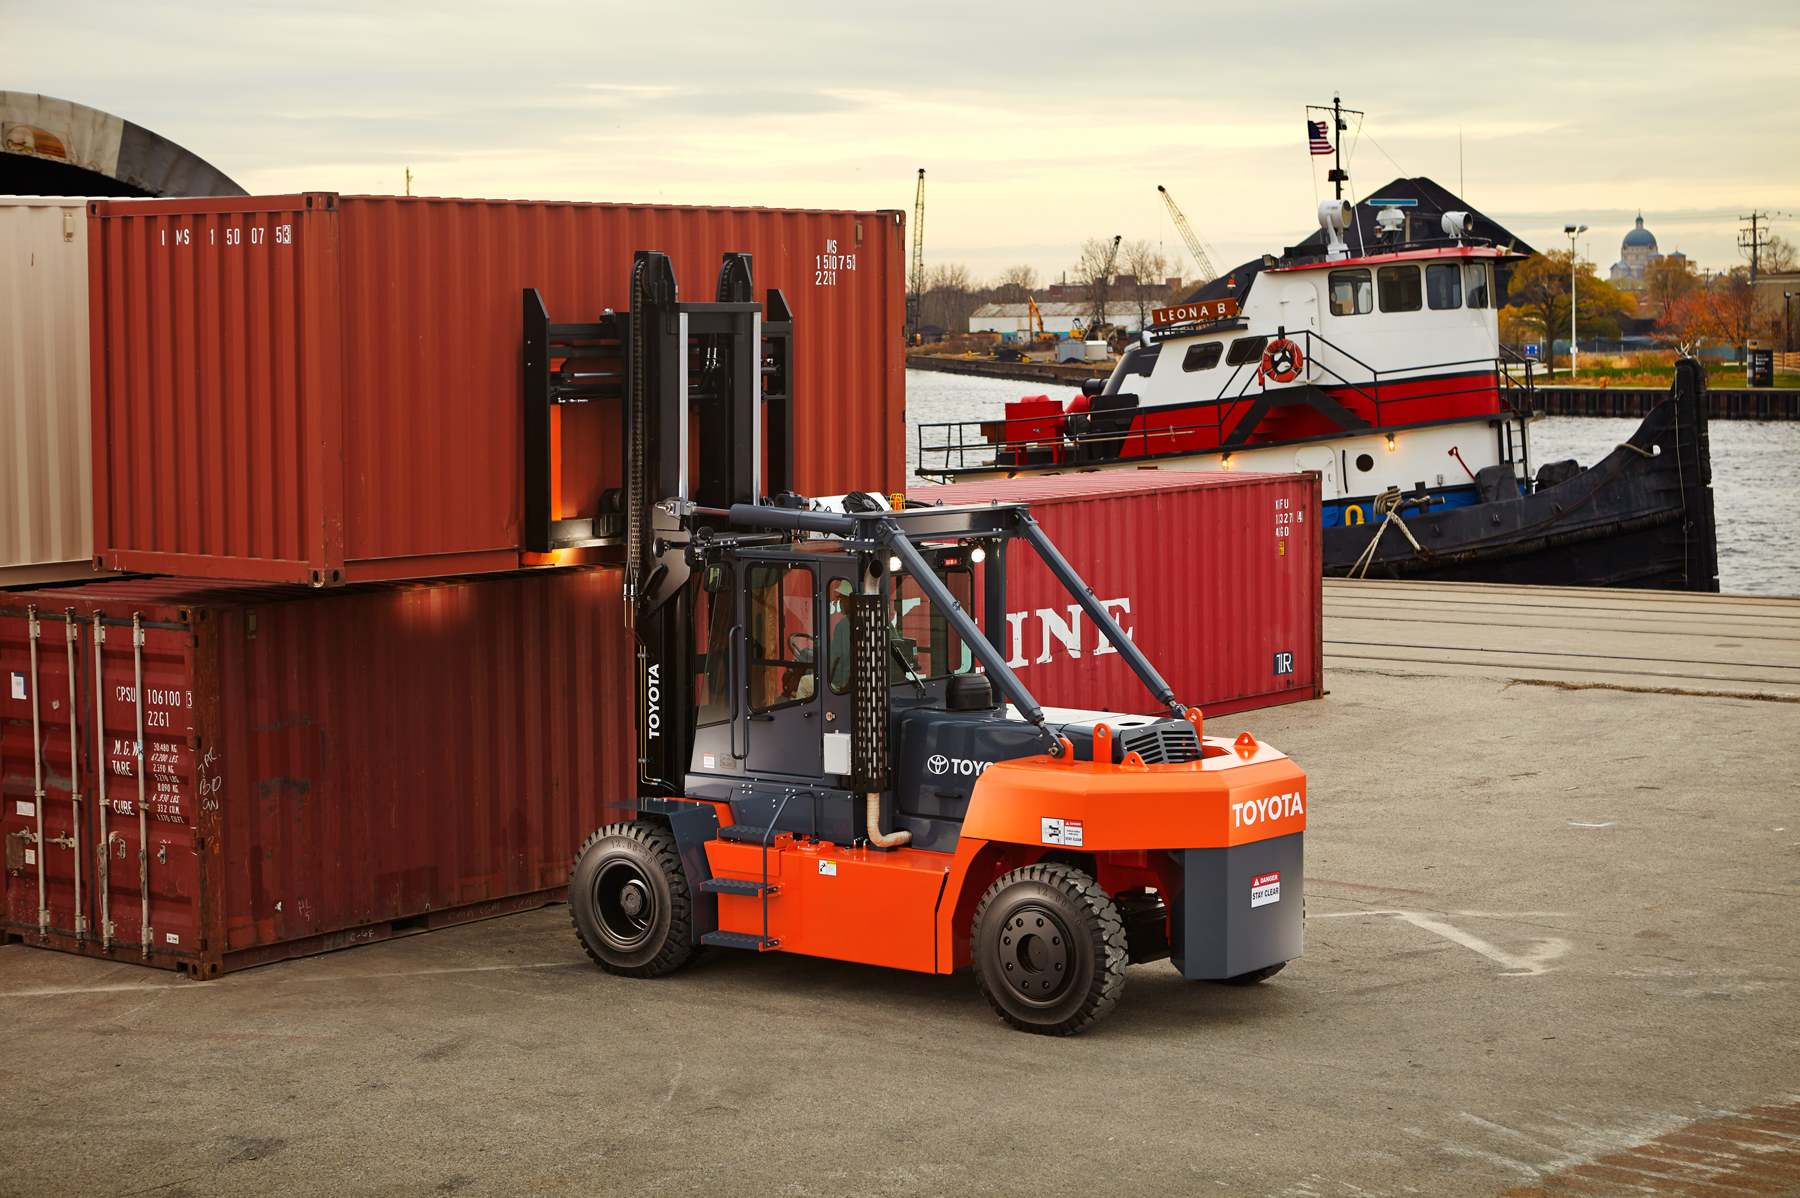 Toyota Forklift: When High Capacity Is Needed the THD